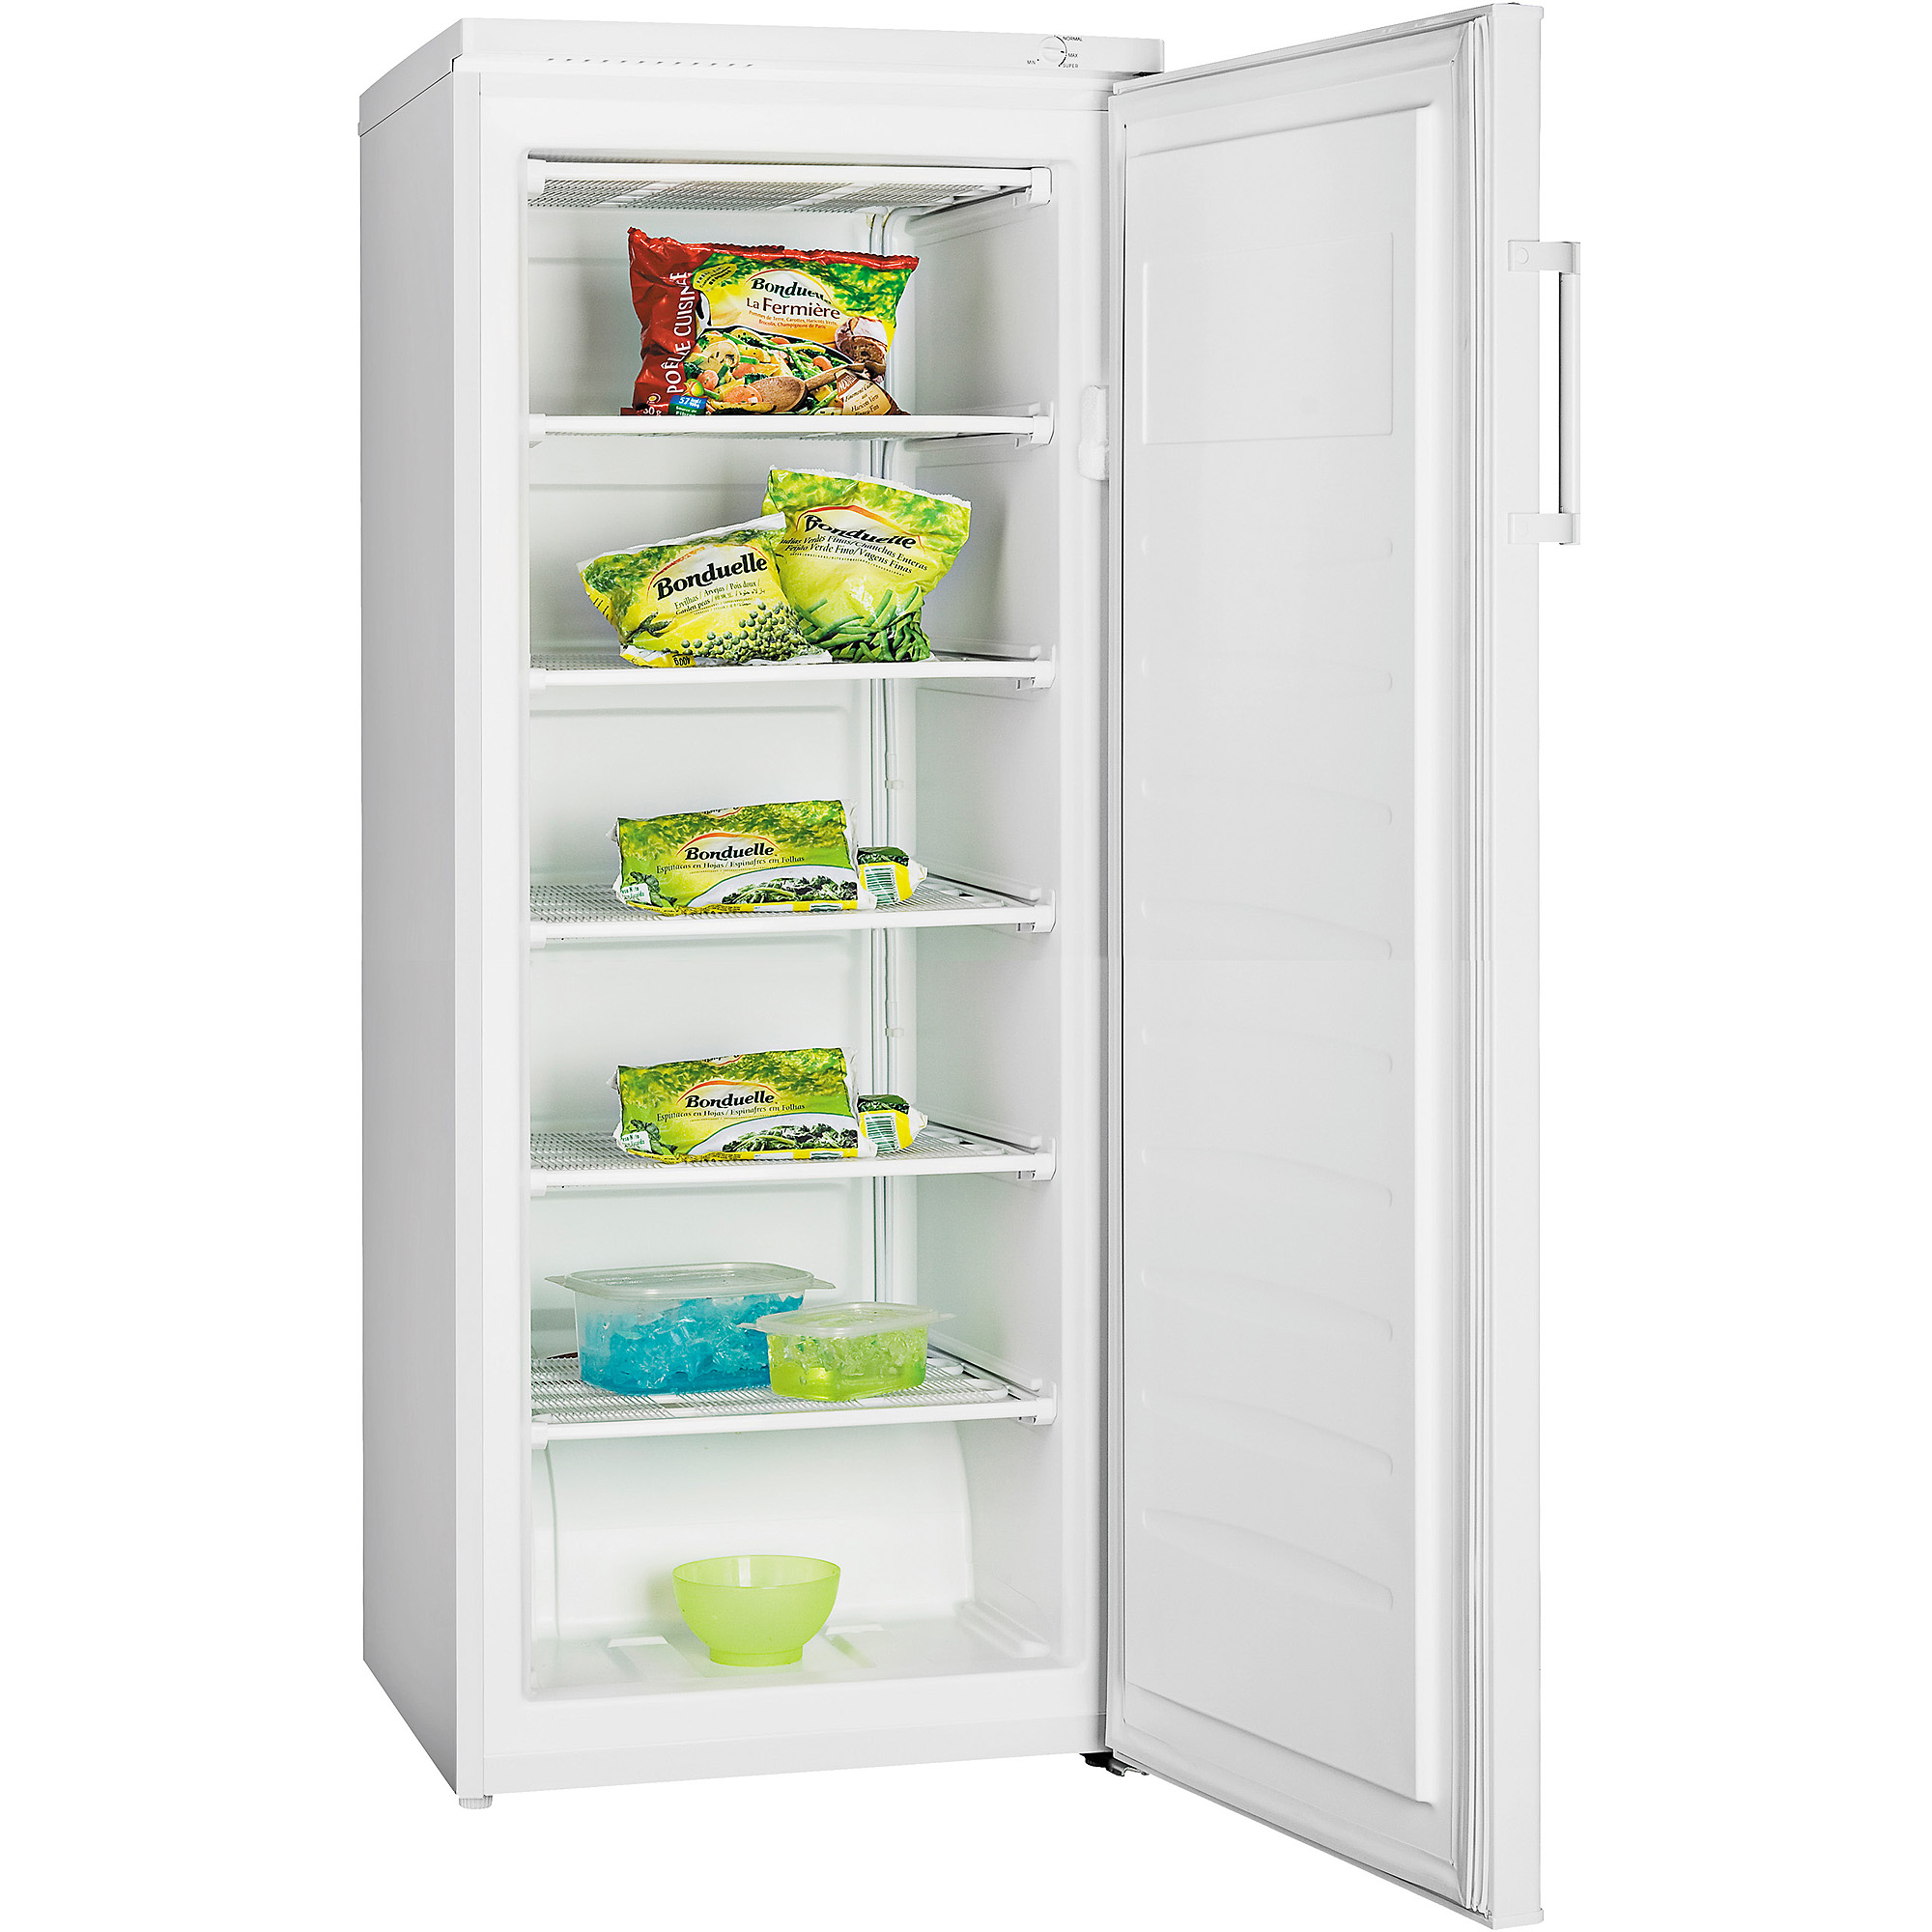 Igloo 6 9 Cu Ft Upright Freezer White 58465772840 Ebay